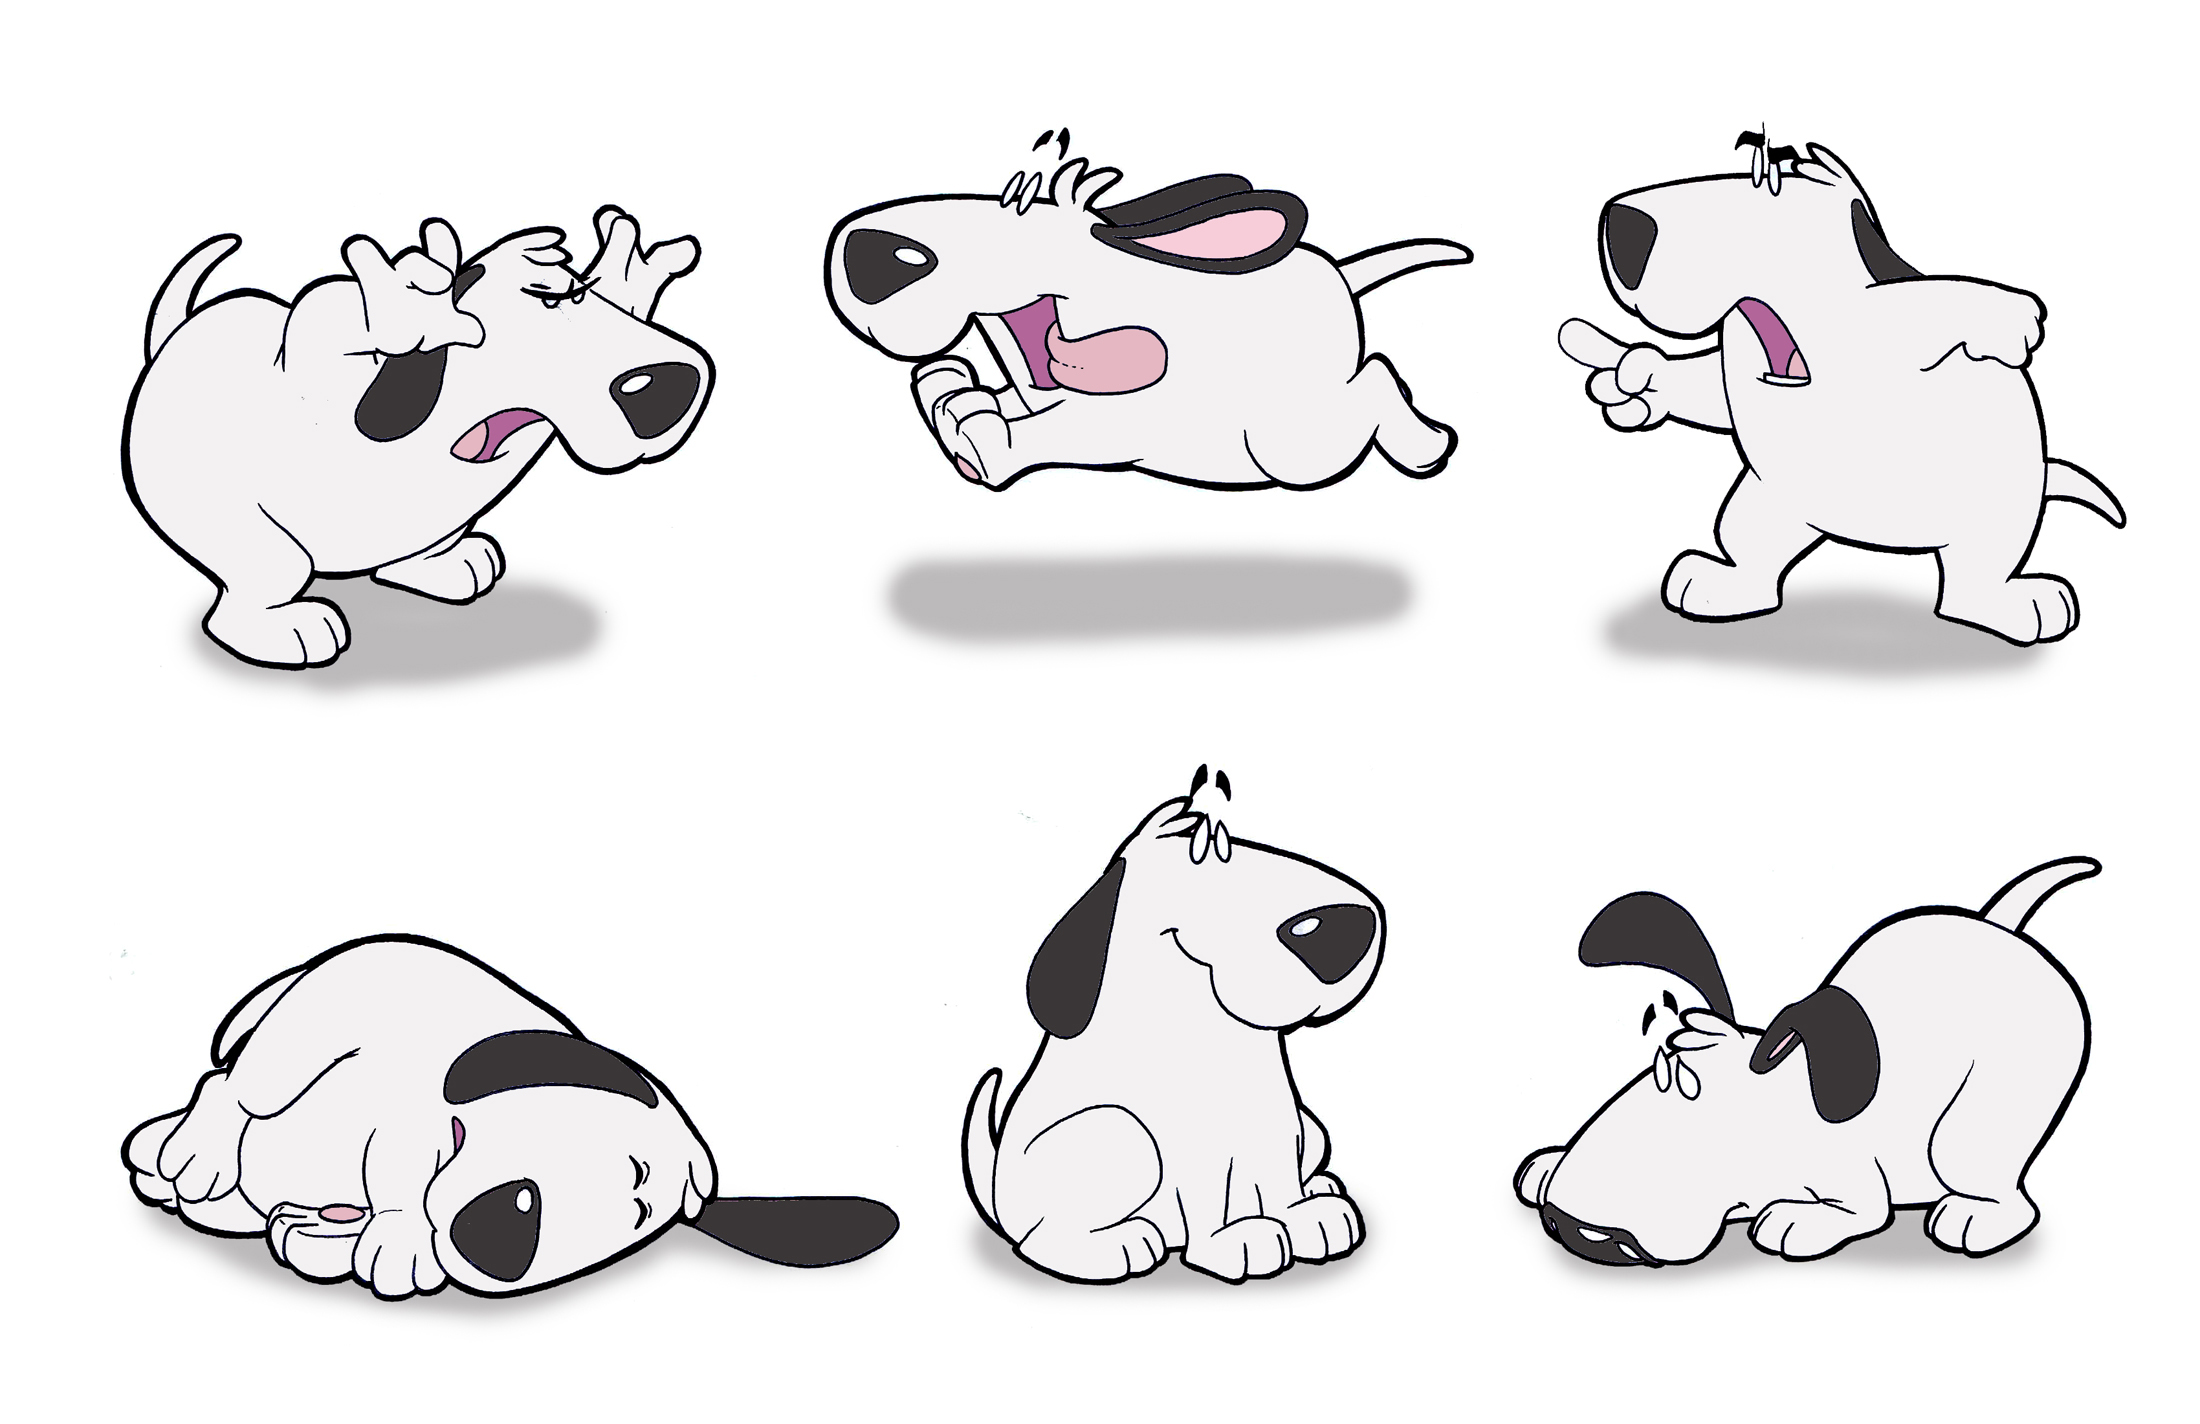 Character Design Dog : Index of pages animationschool layout hansel grethel